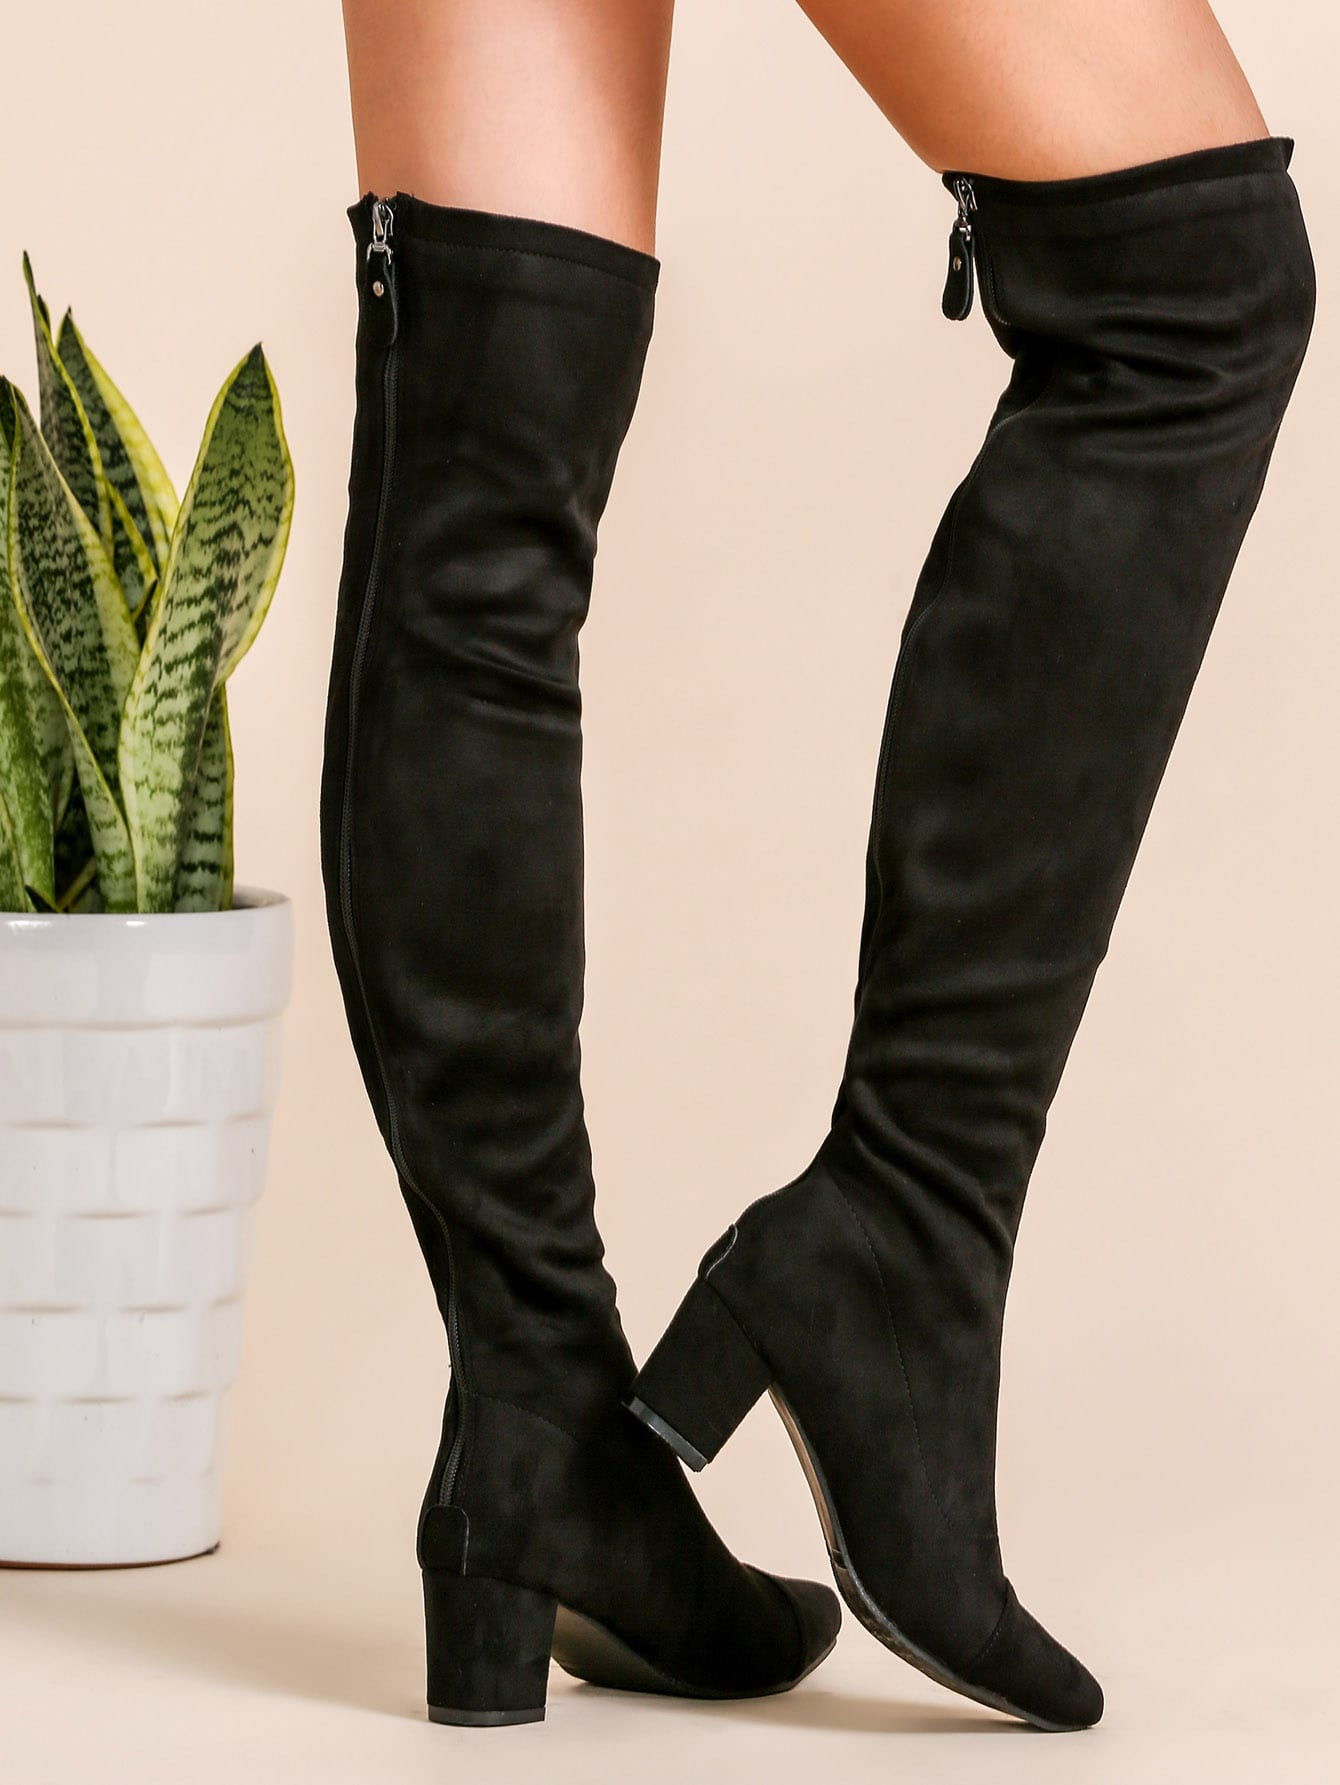 Black Faux Suede Point Toe Thigh High Boots shoes161007807